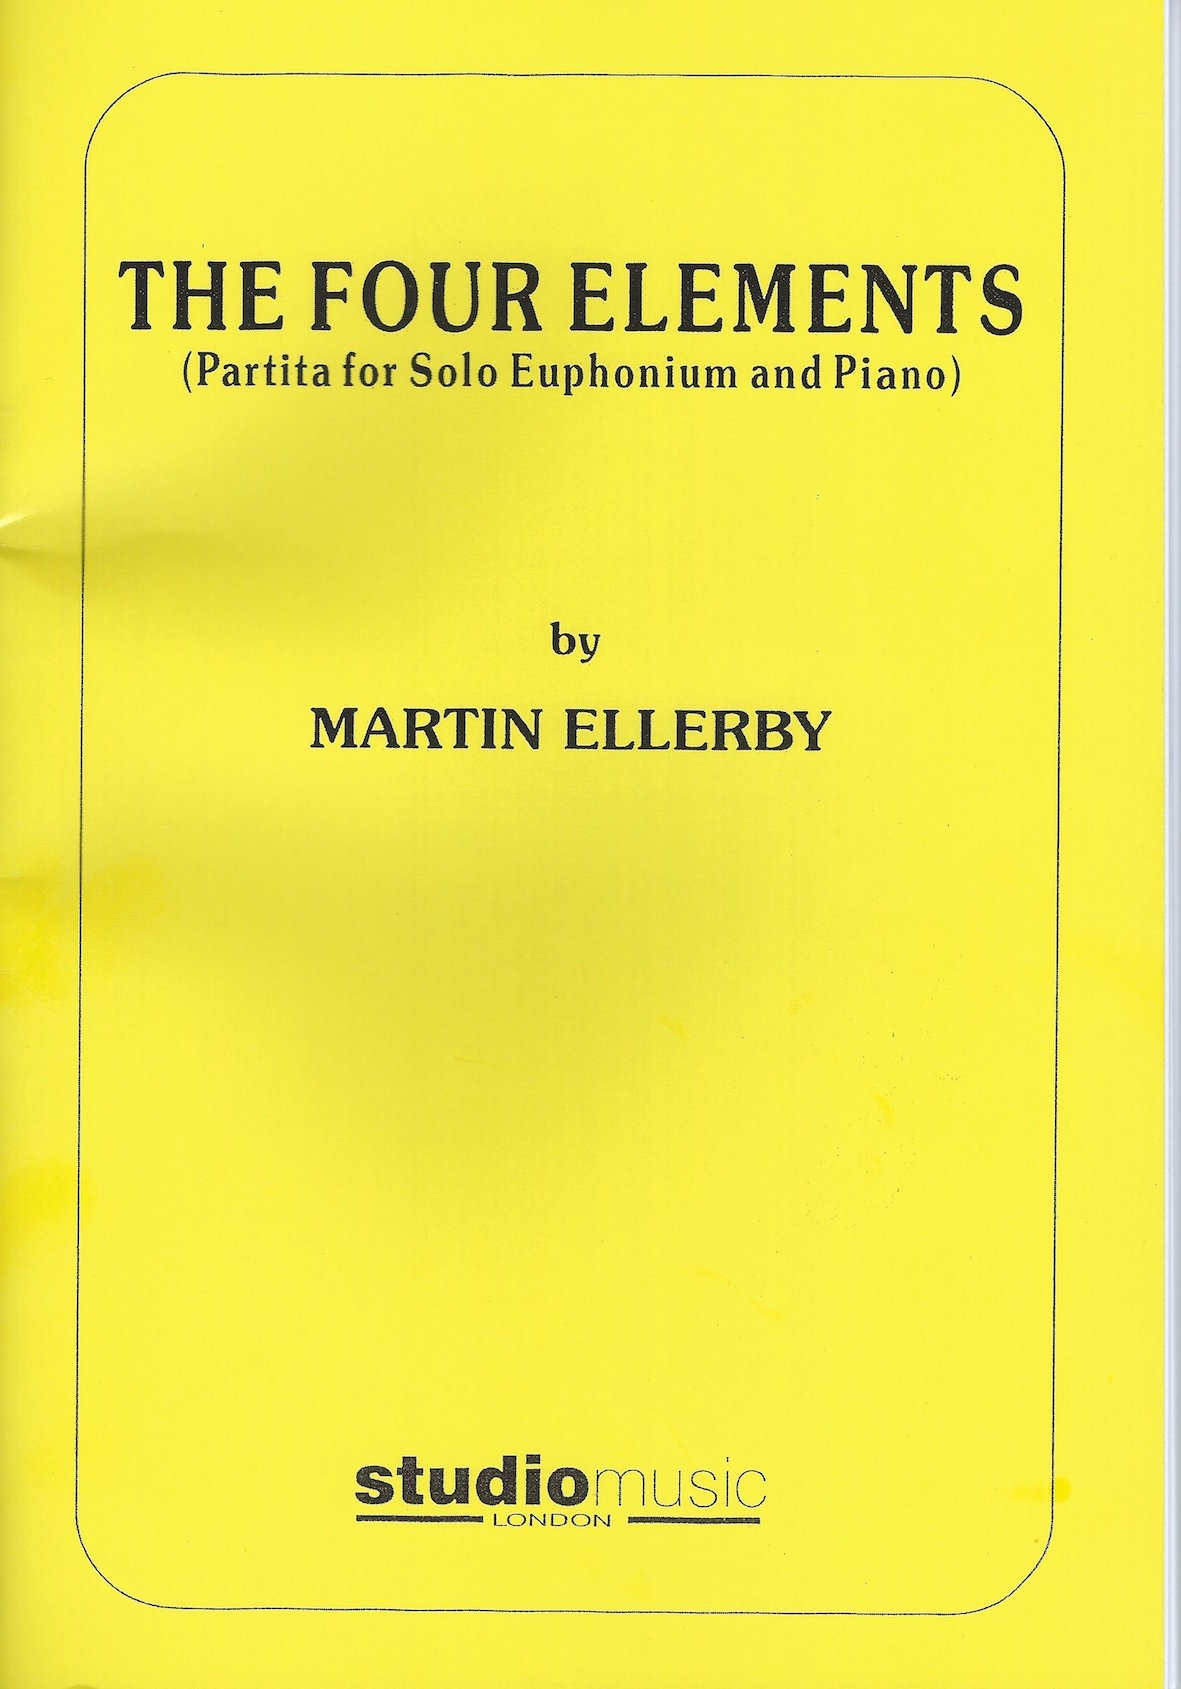 The Four Elements (Partita for Solo Euphonium and Piano) - Martin Ellerby